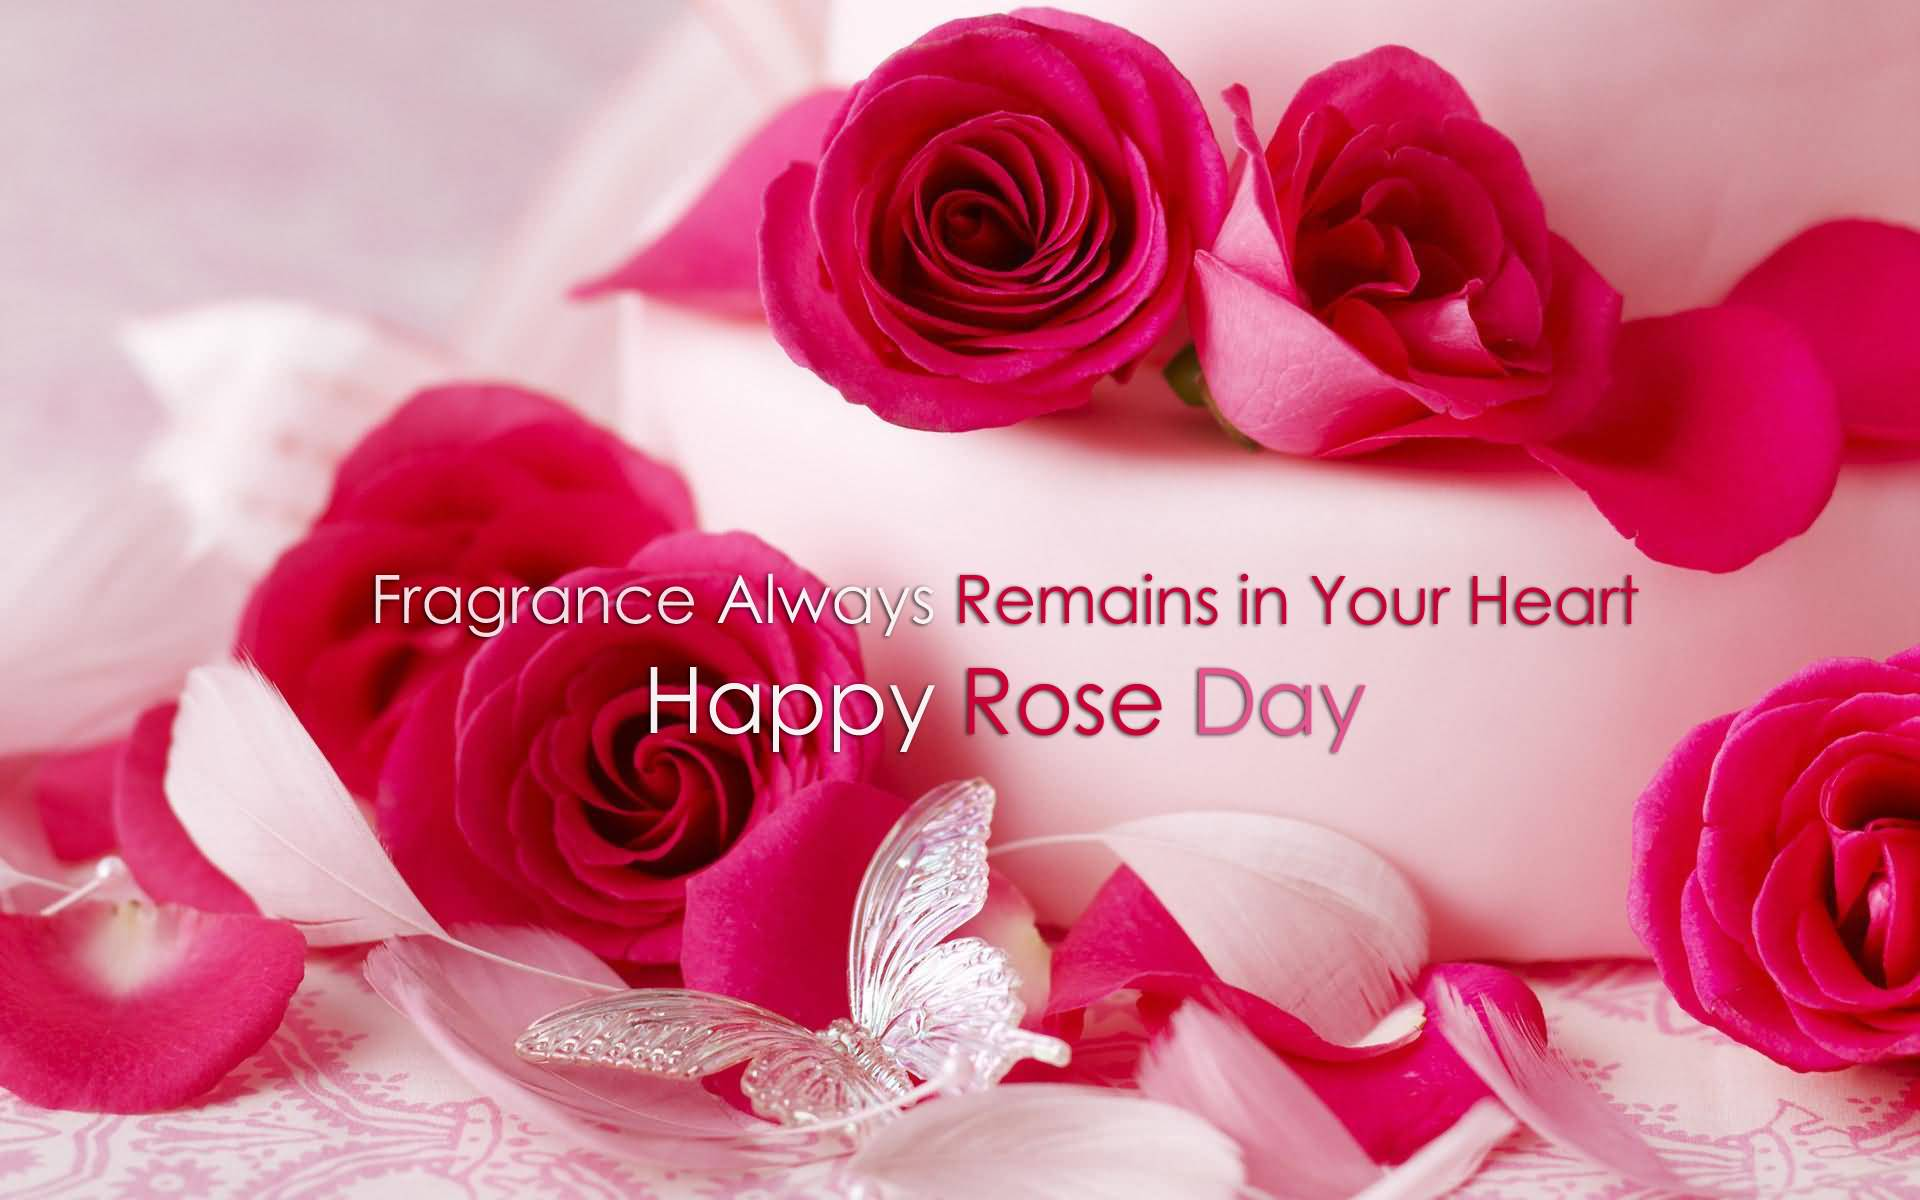 Happy Rose day lovely pink roses with fragrance for your love